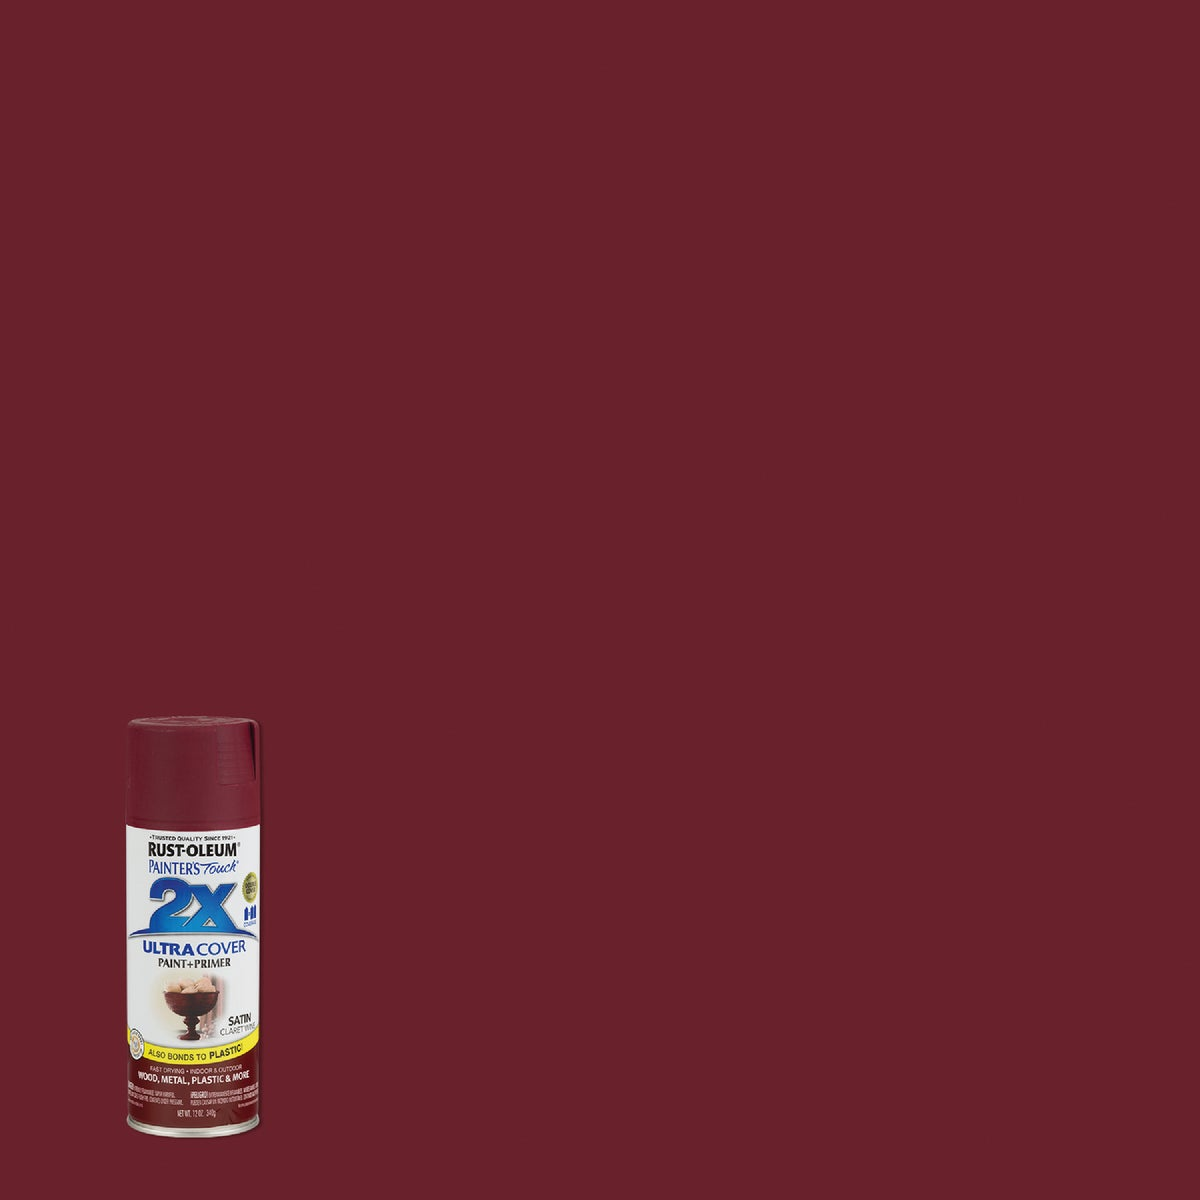 SAT CLA WINE SPRAY PAINT - 249083 by Rustoleum